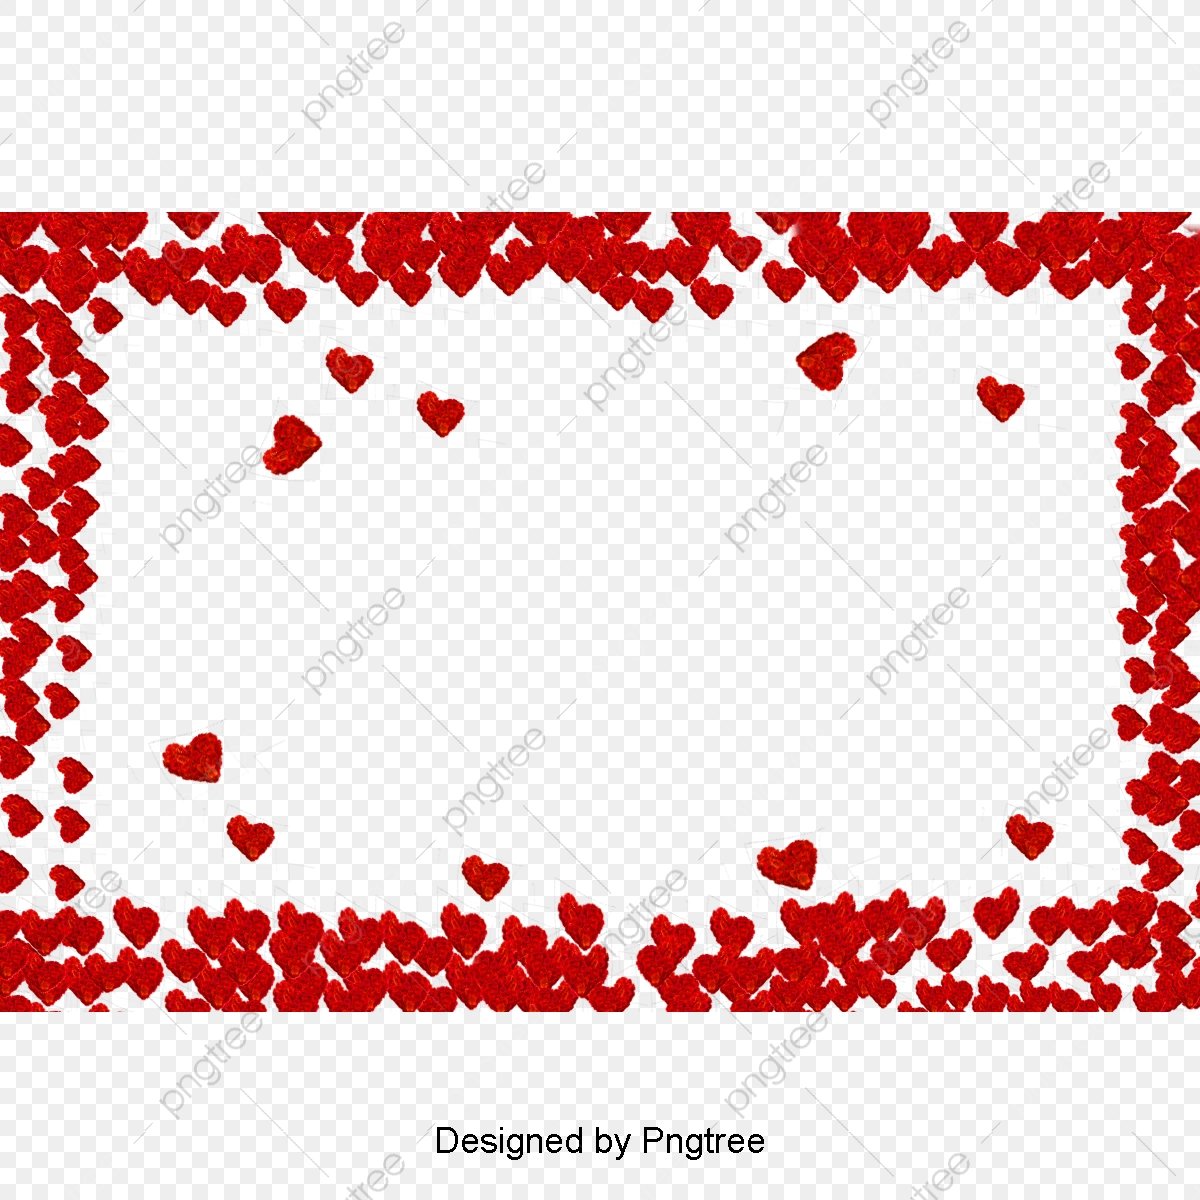 Hearts clipart frame. Red border heart png